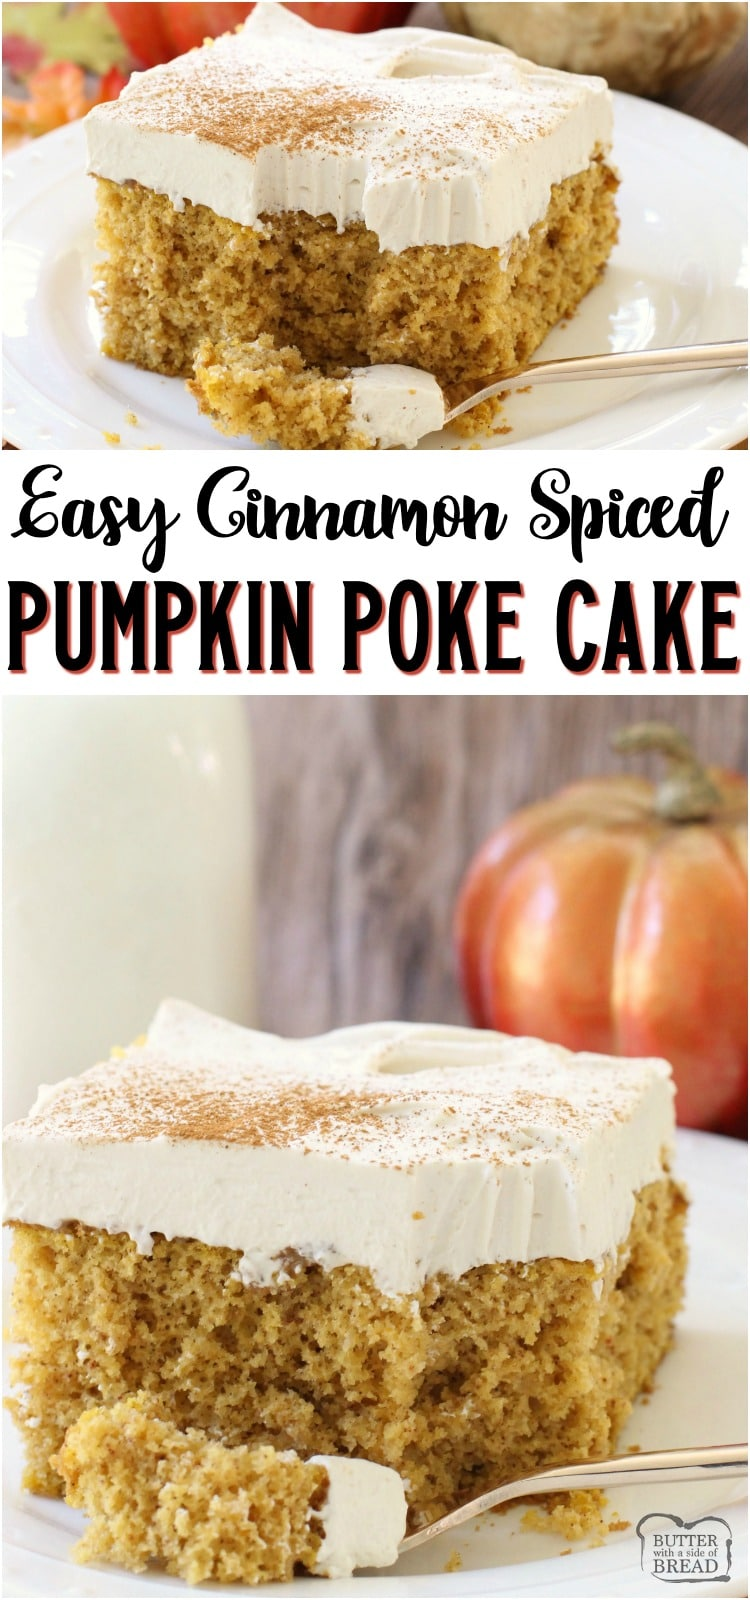 Pumpkin Poke Cake takes an ordinary cake mix and turns it into this deliciously festive Fall treat filled with pumpkin, cinnamon, and nutmeg. #pumpkin #cake #pokecake #cinnamon #baking #Fall #recipe #dessert from BUTTER WITH A SIDE OF BREAD